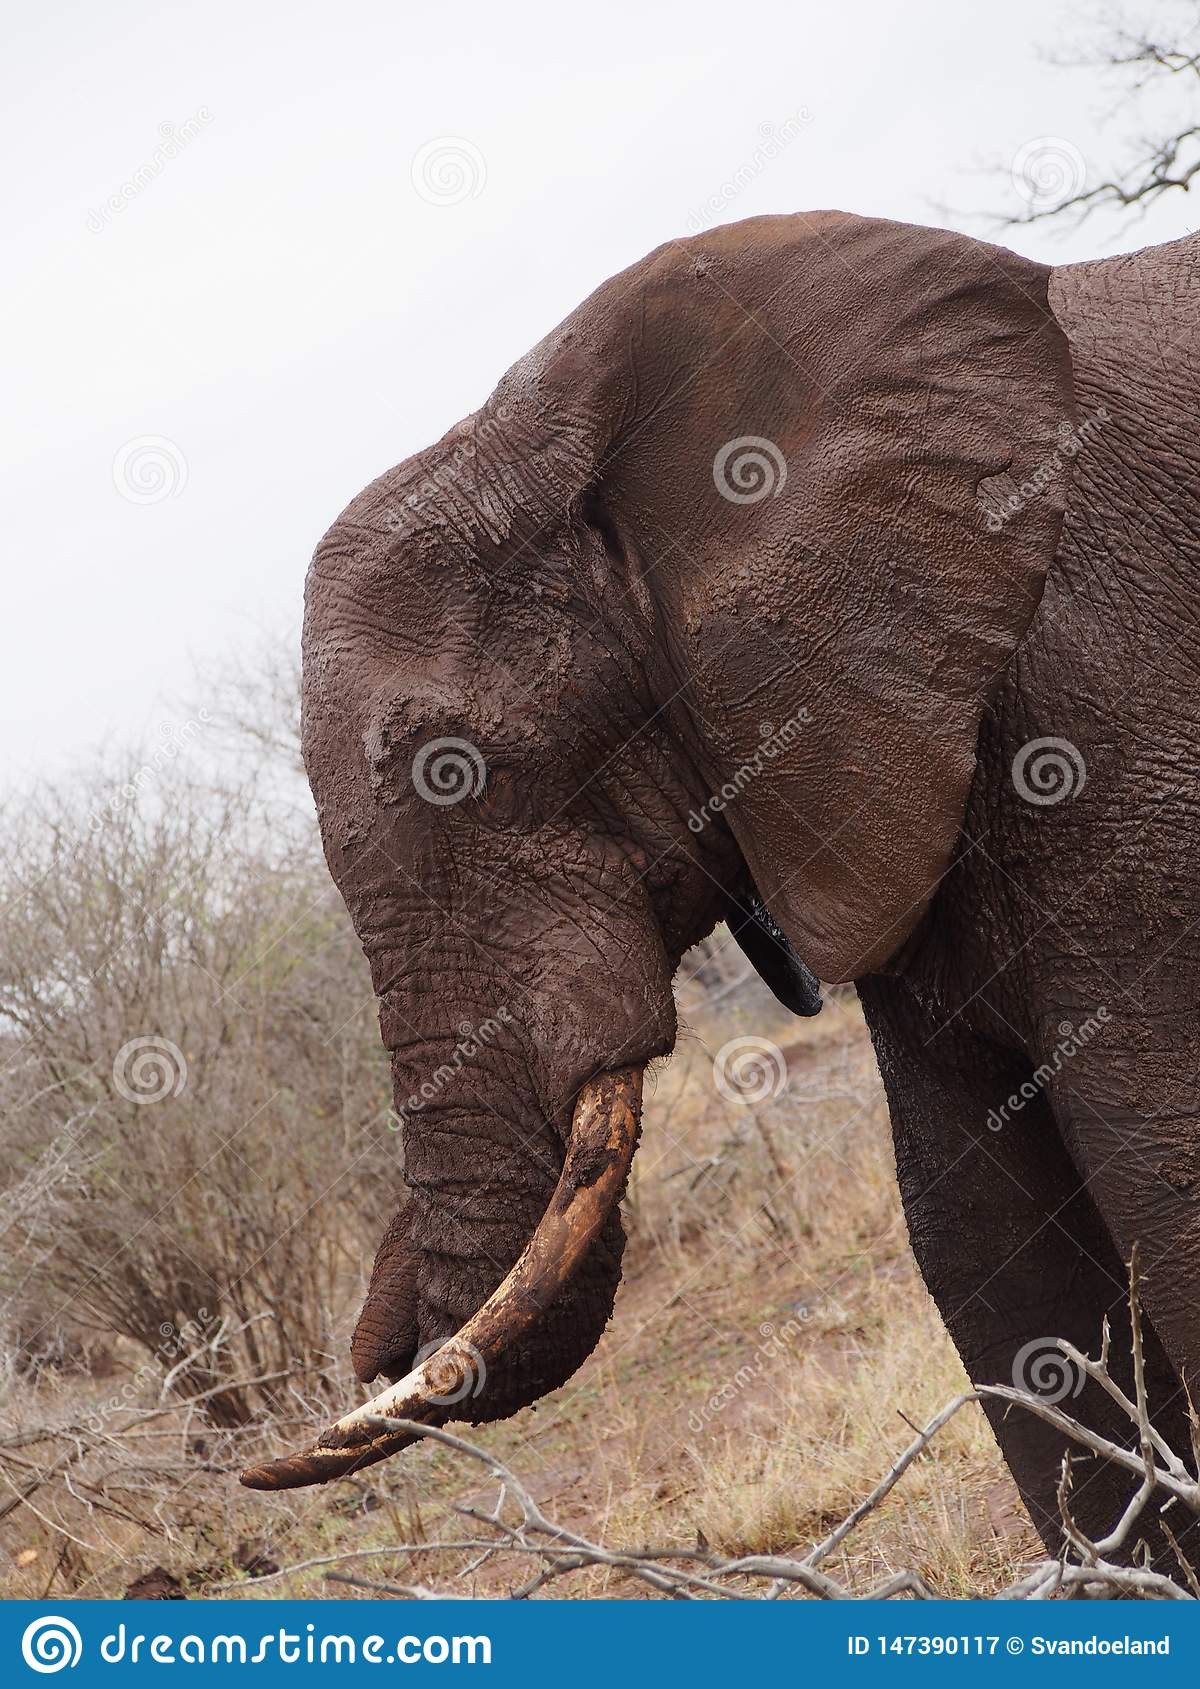 Close up of muddy elephant in Africa.